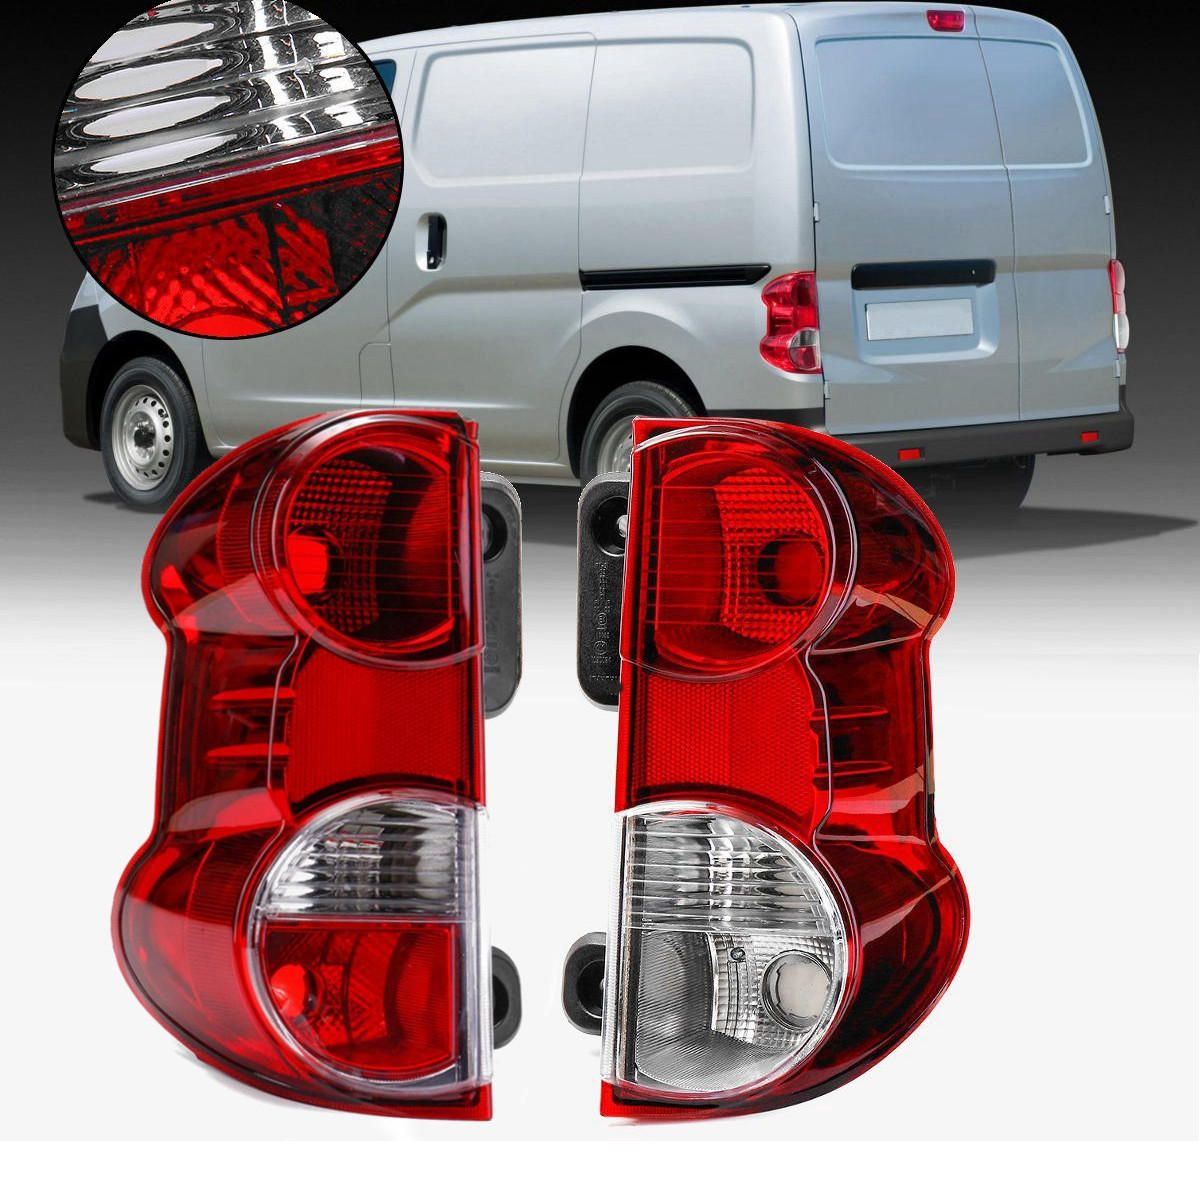 DZA US$33.99 Left/Right Red Car Rear Tail Light Shell Brake Lamp Cover for NISSAN NV200 2009-2013